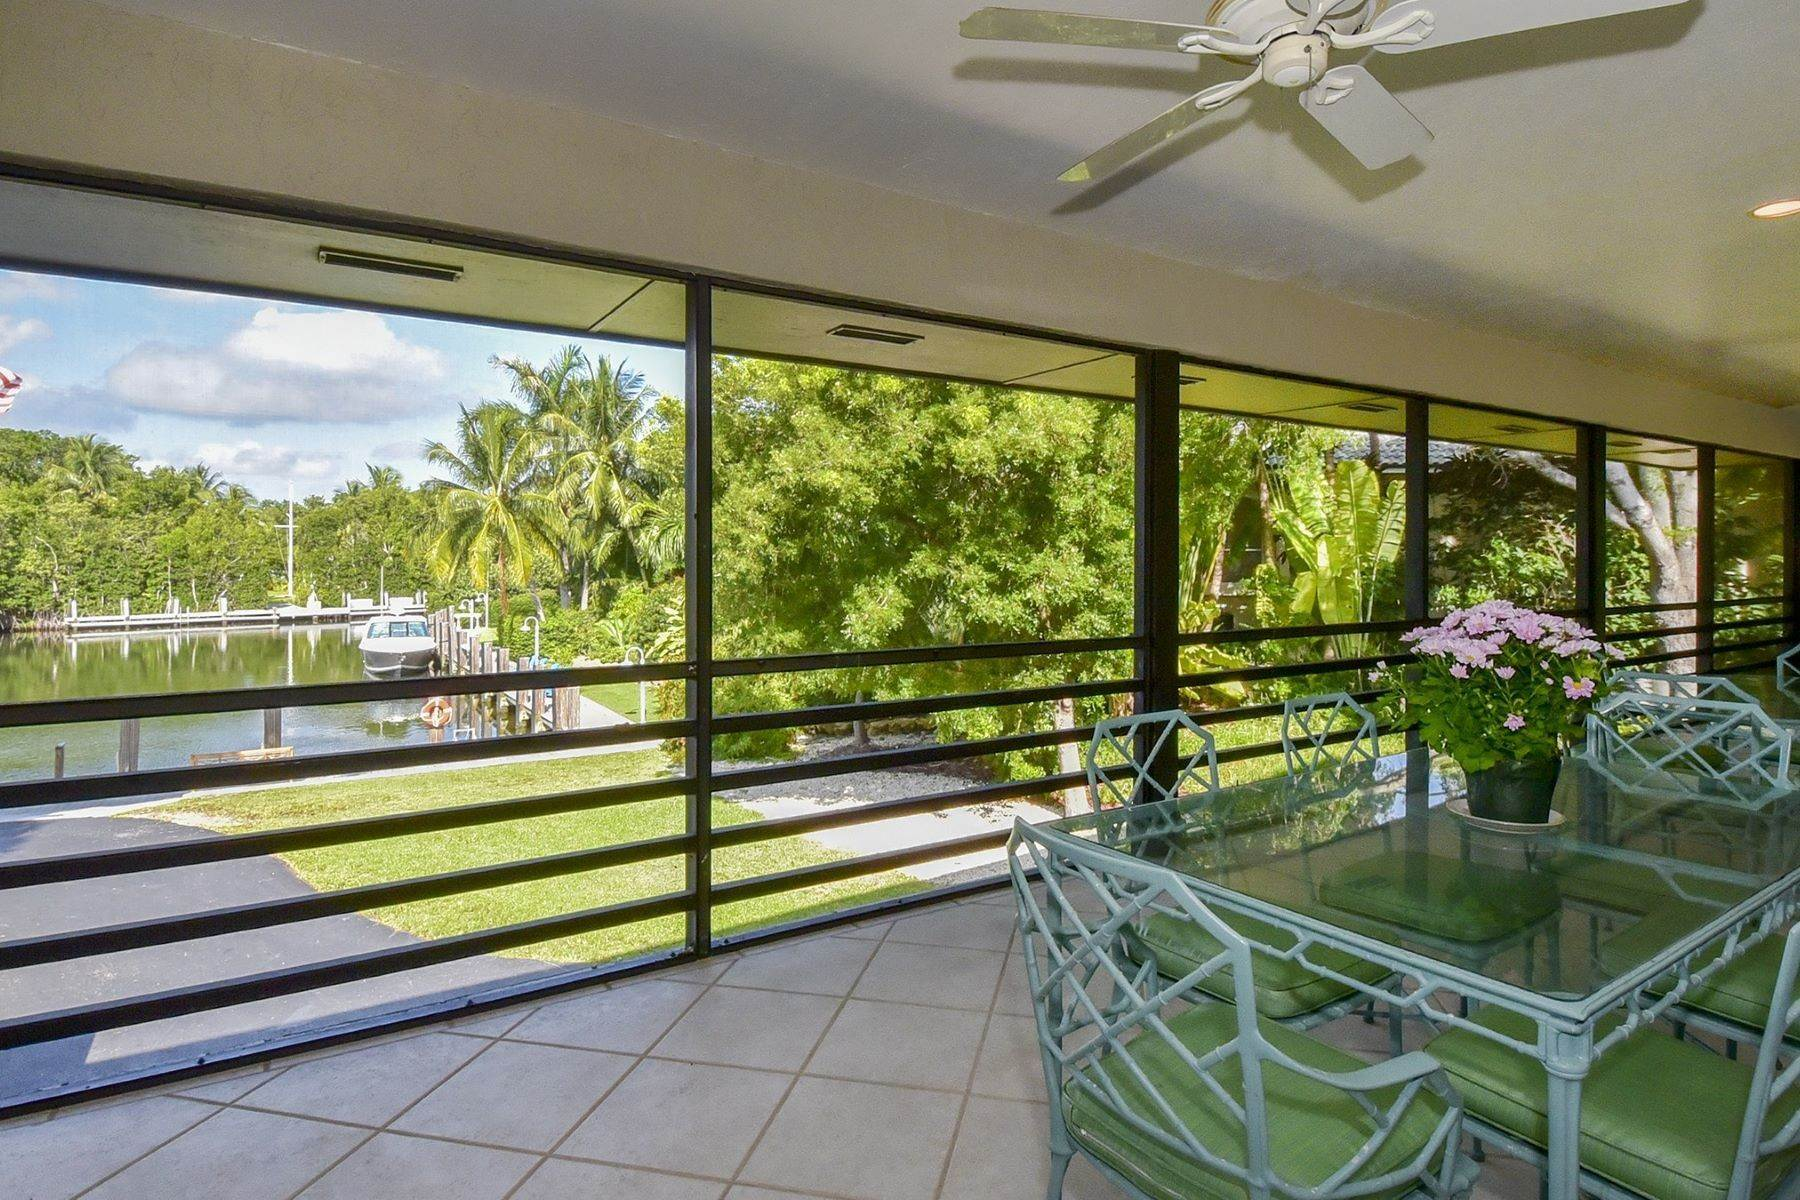 44. Property for Sale at 10 Cannon Point, Key Largo, FL 10 Cannon Point Key Largo, Florida 33037 United States